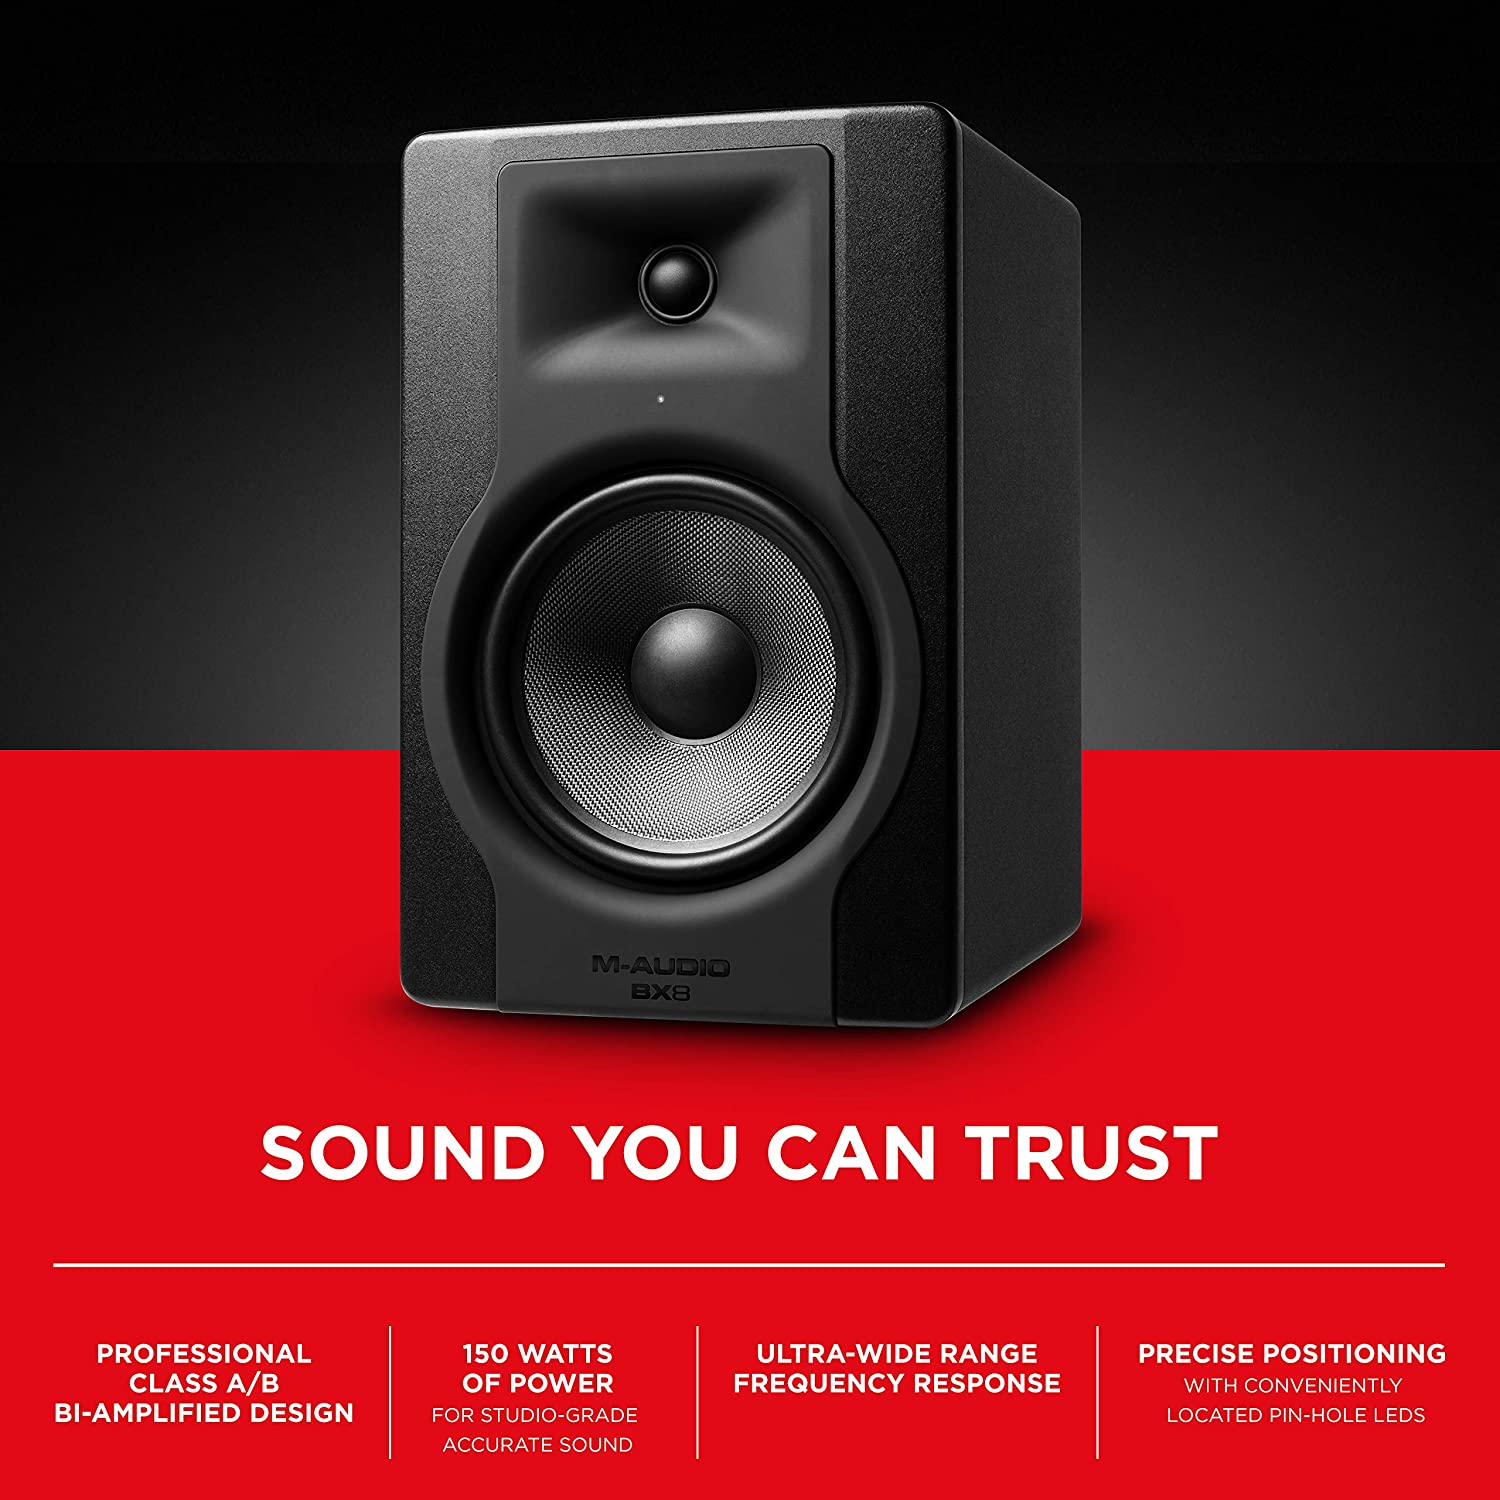 MAudio BX8 D3 8-Inch 150-Watt Studio Monitor Speaker with Acoustic Space Control for Music Production and Mixing